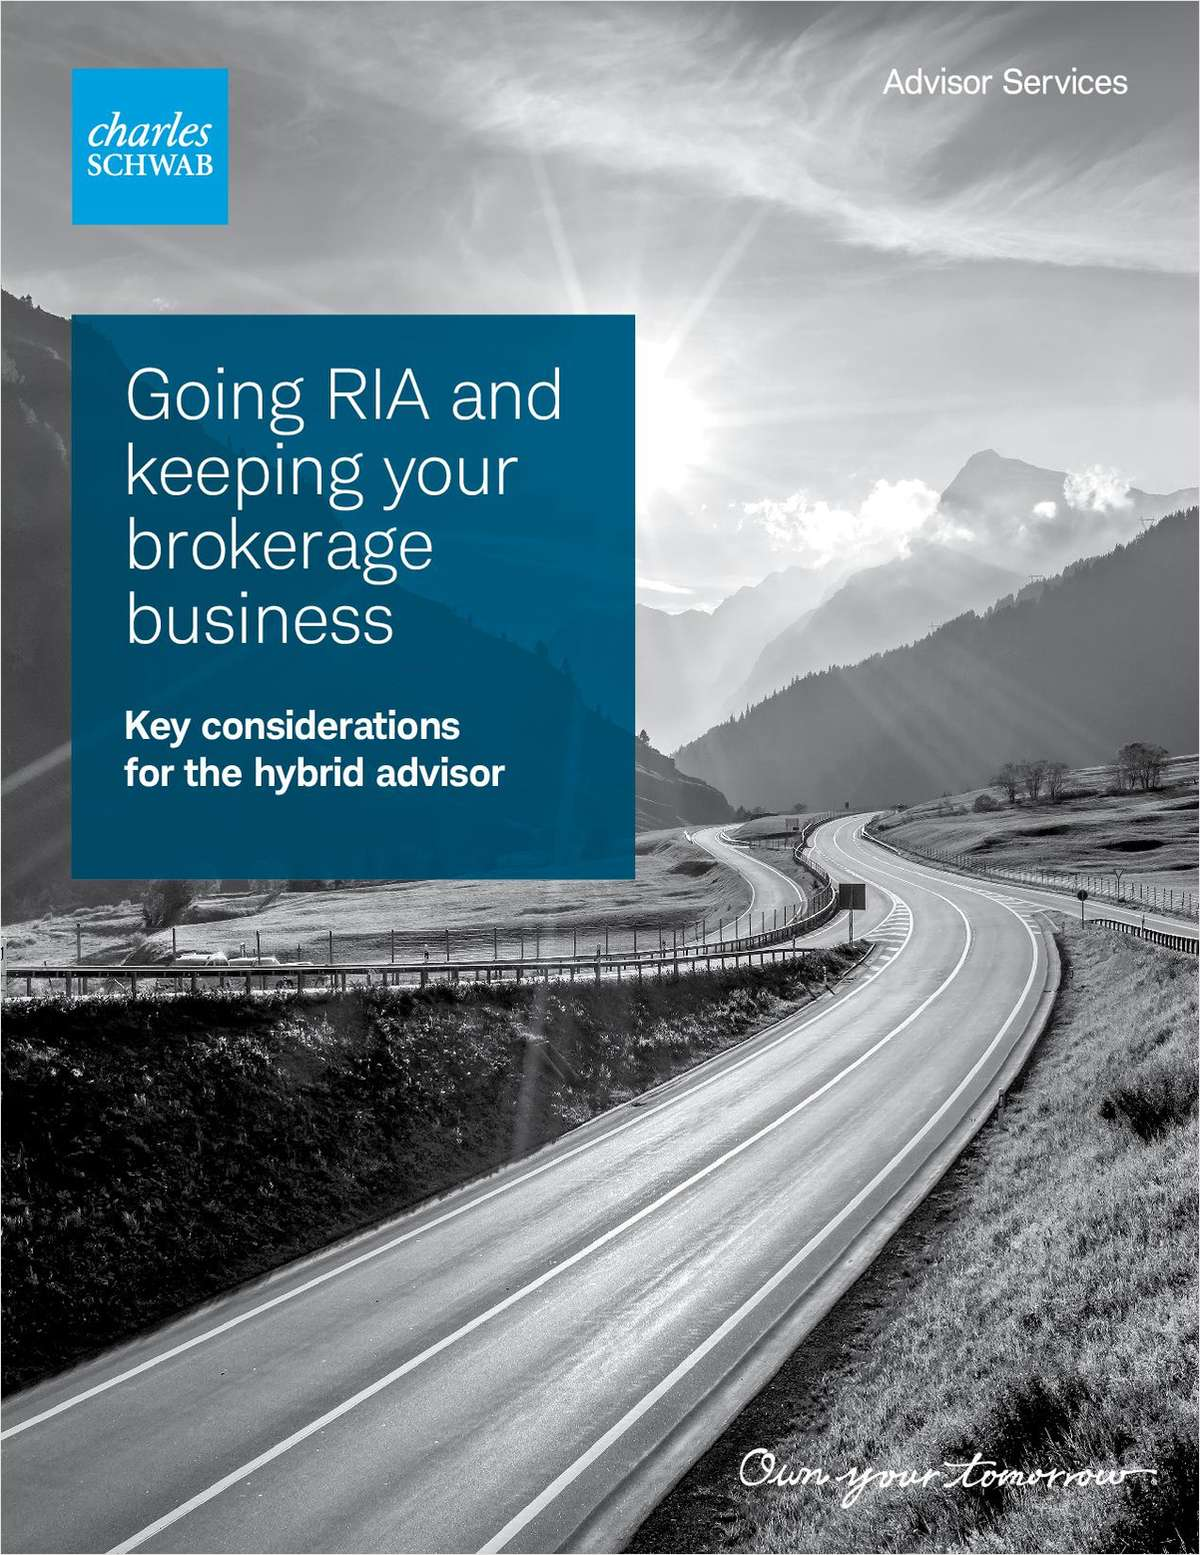 Going Independent with the Hybrid RIA Model